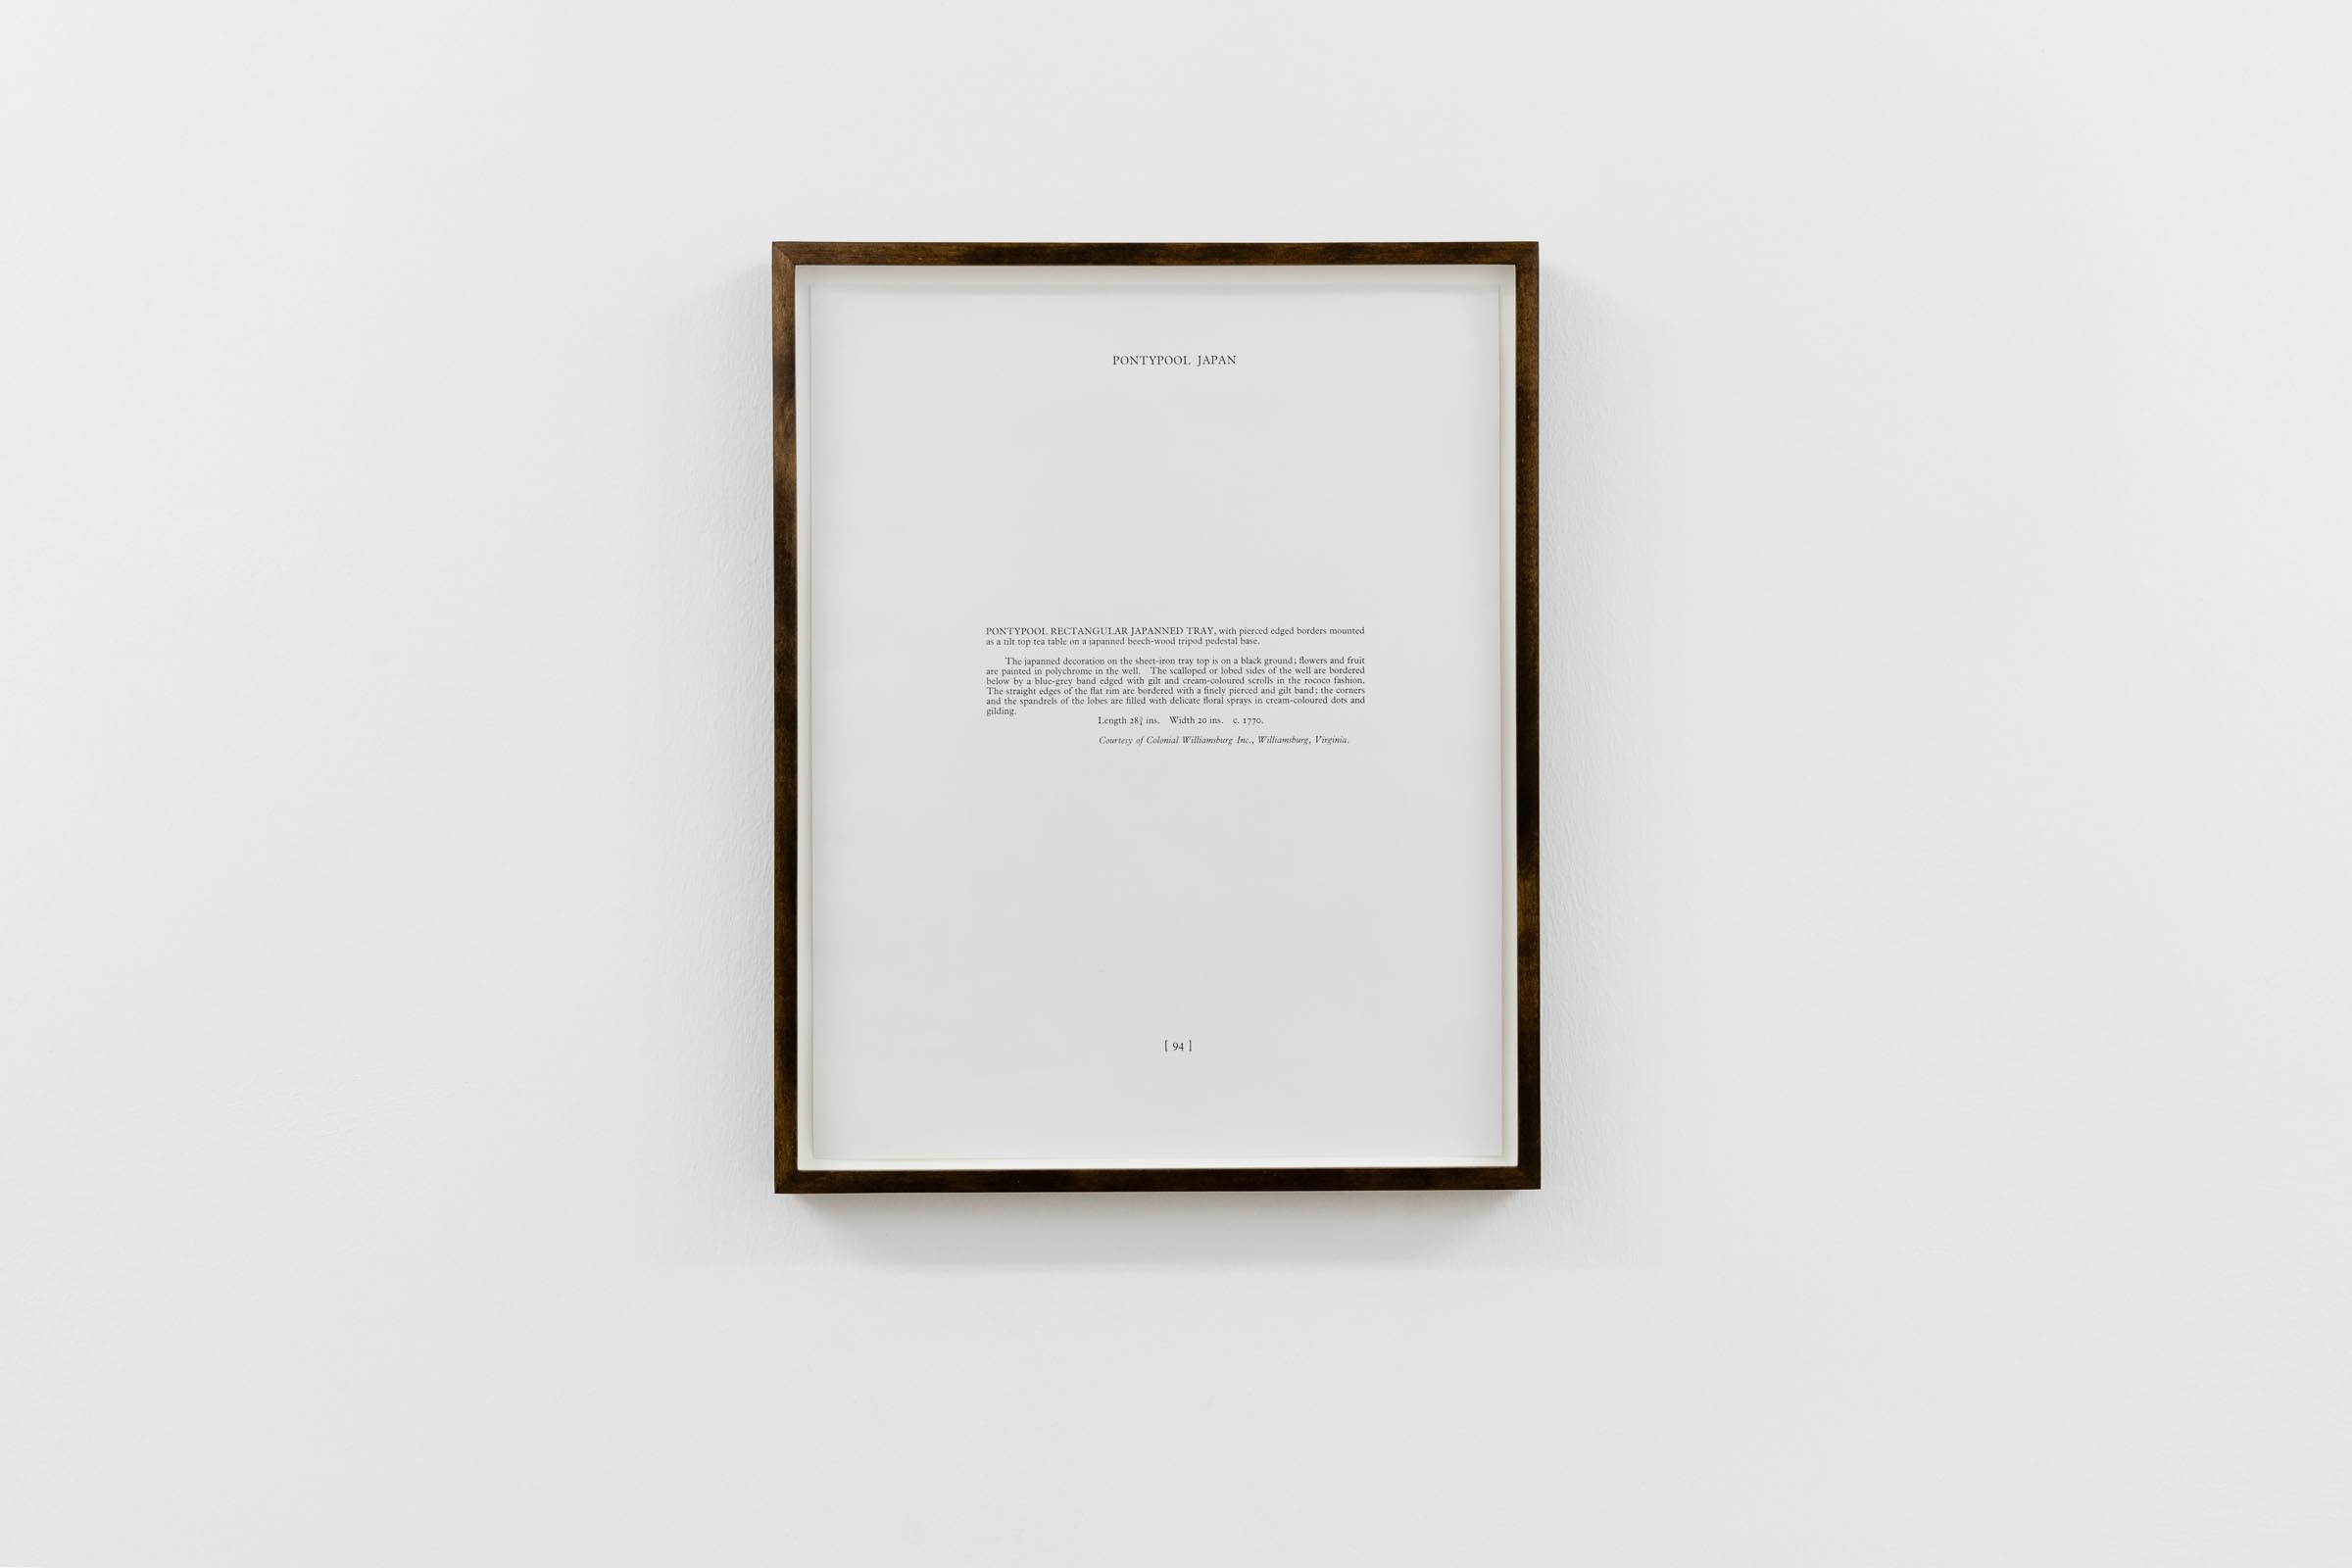 Haris Epaminonda, Unittled #15 a/y, 2017, framed found page, 33,6 x 27,2 x 2,5 cm